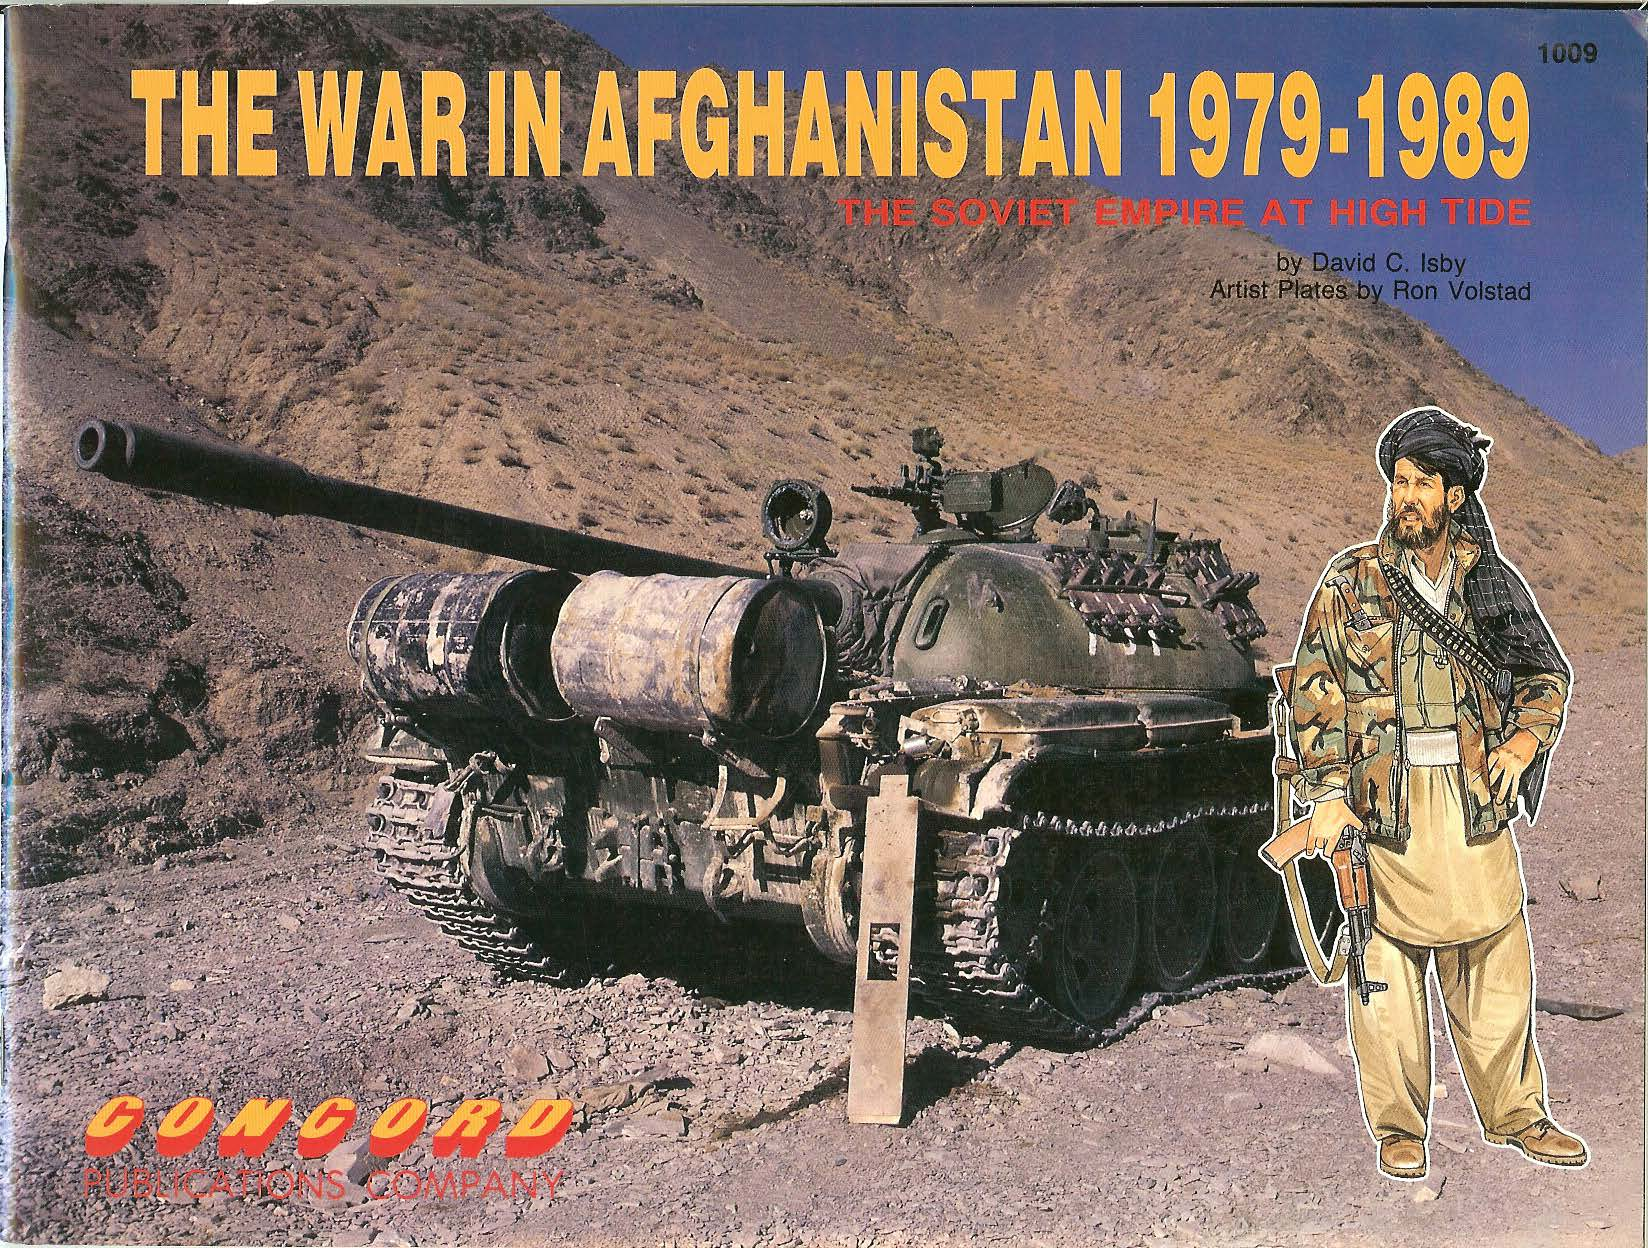 Concord. 1009 The War in Afghanistan .jpg